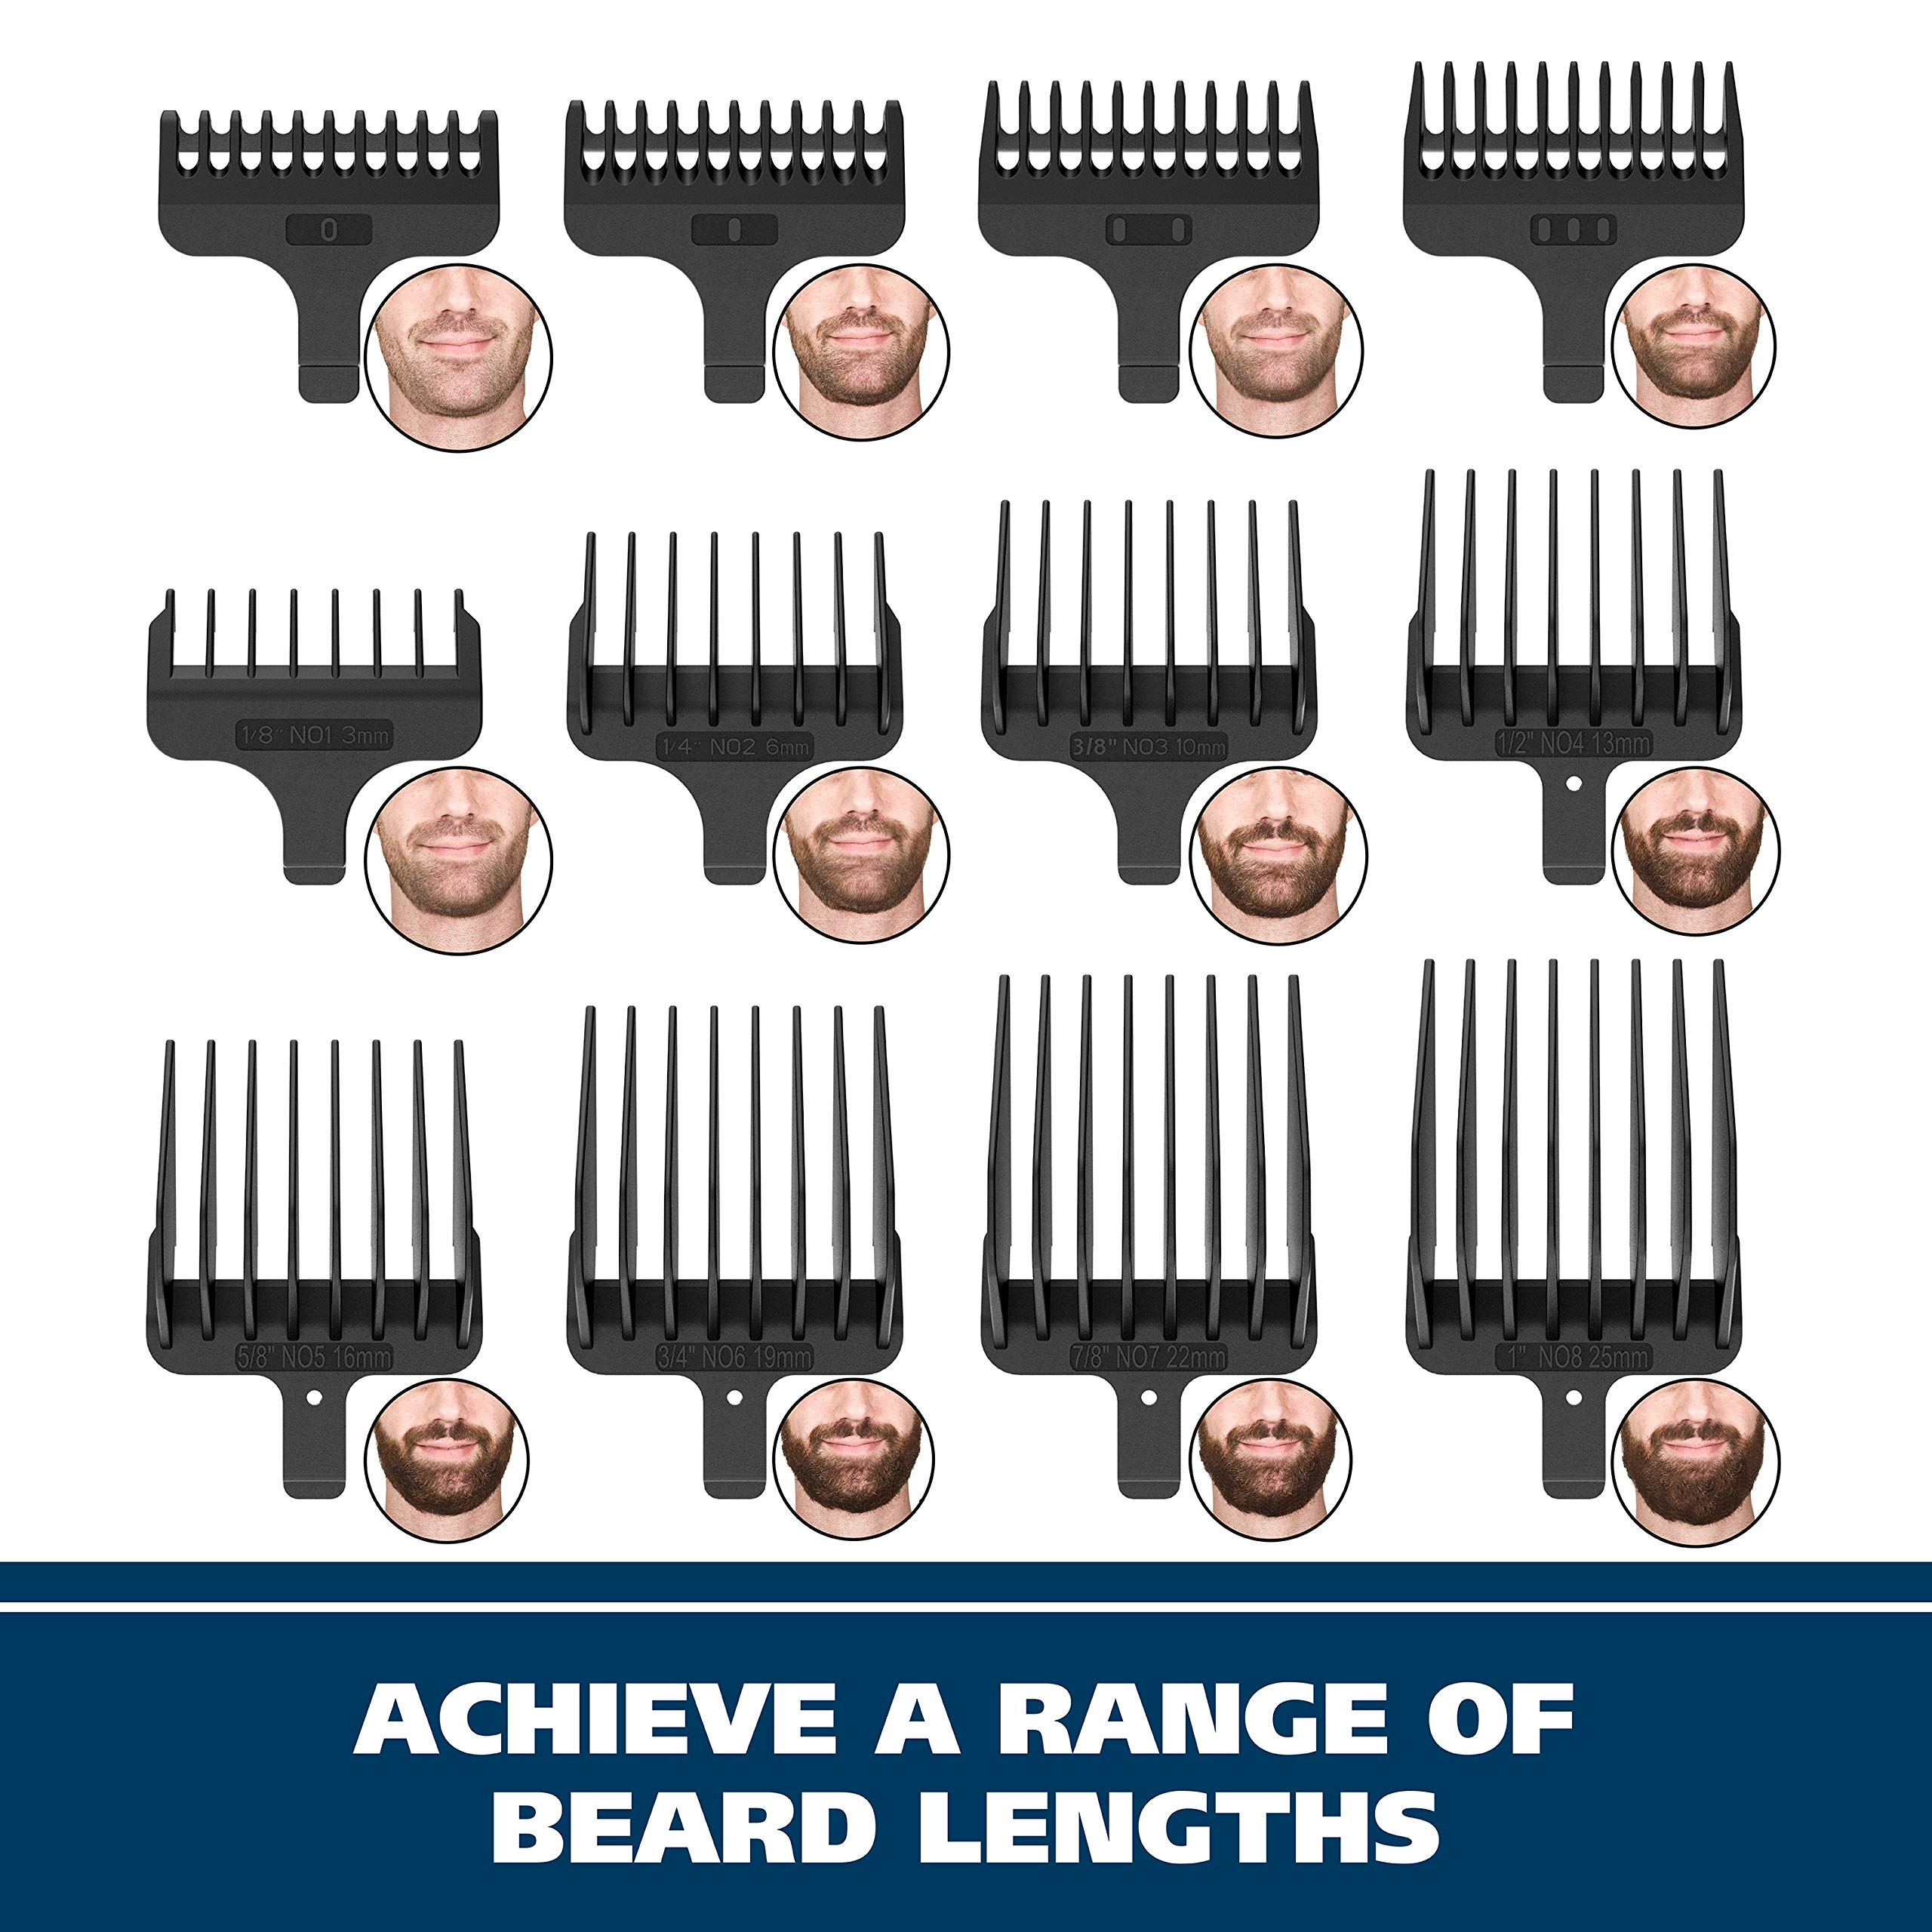 Wahl Clipper Stainless Steel Lithium Ion Plus Beard Trimmers for Men, Hair Clippers and Shavers, Nose Ear Trimmers, Rechargeable All in One Men's Grooming Kit, by the Brand used by Professionals #9818 by WAHL (Image #8)